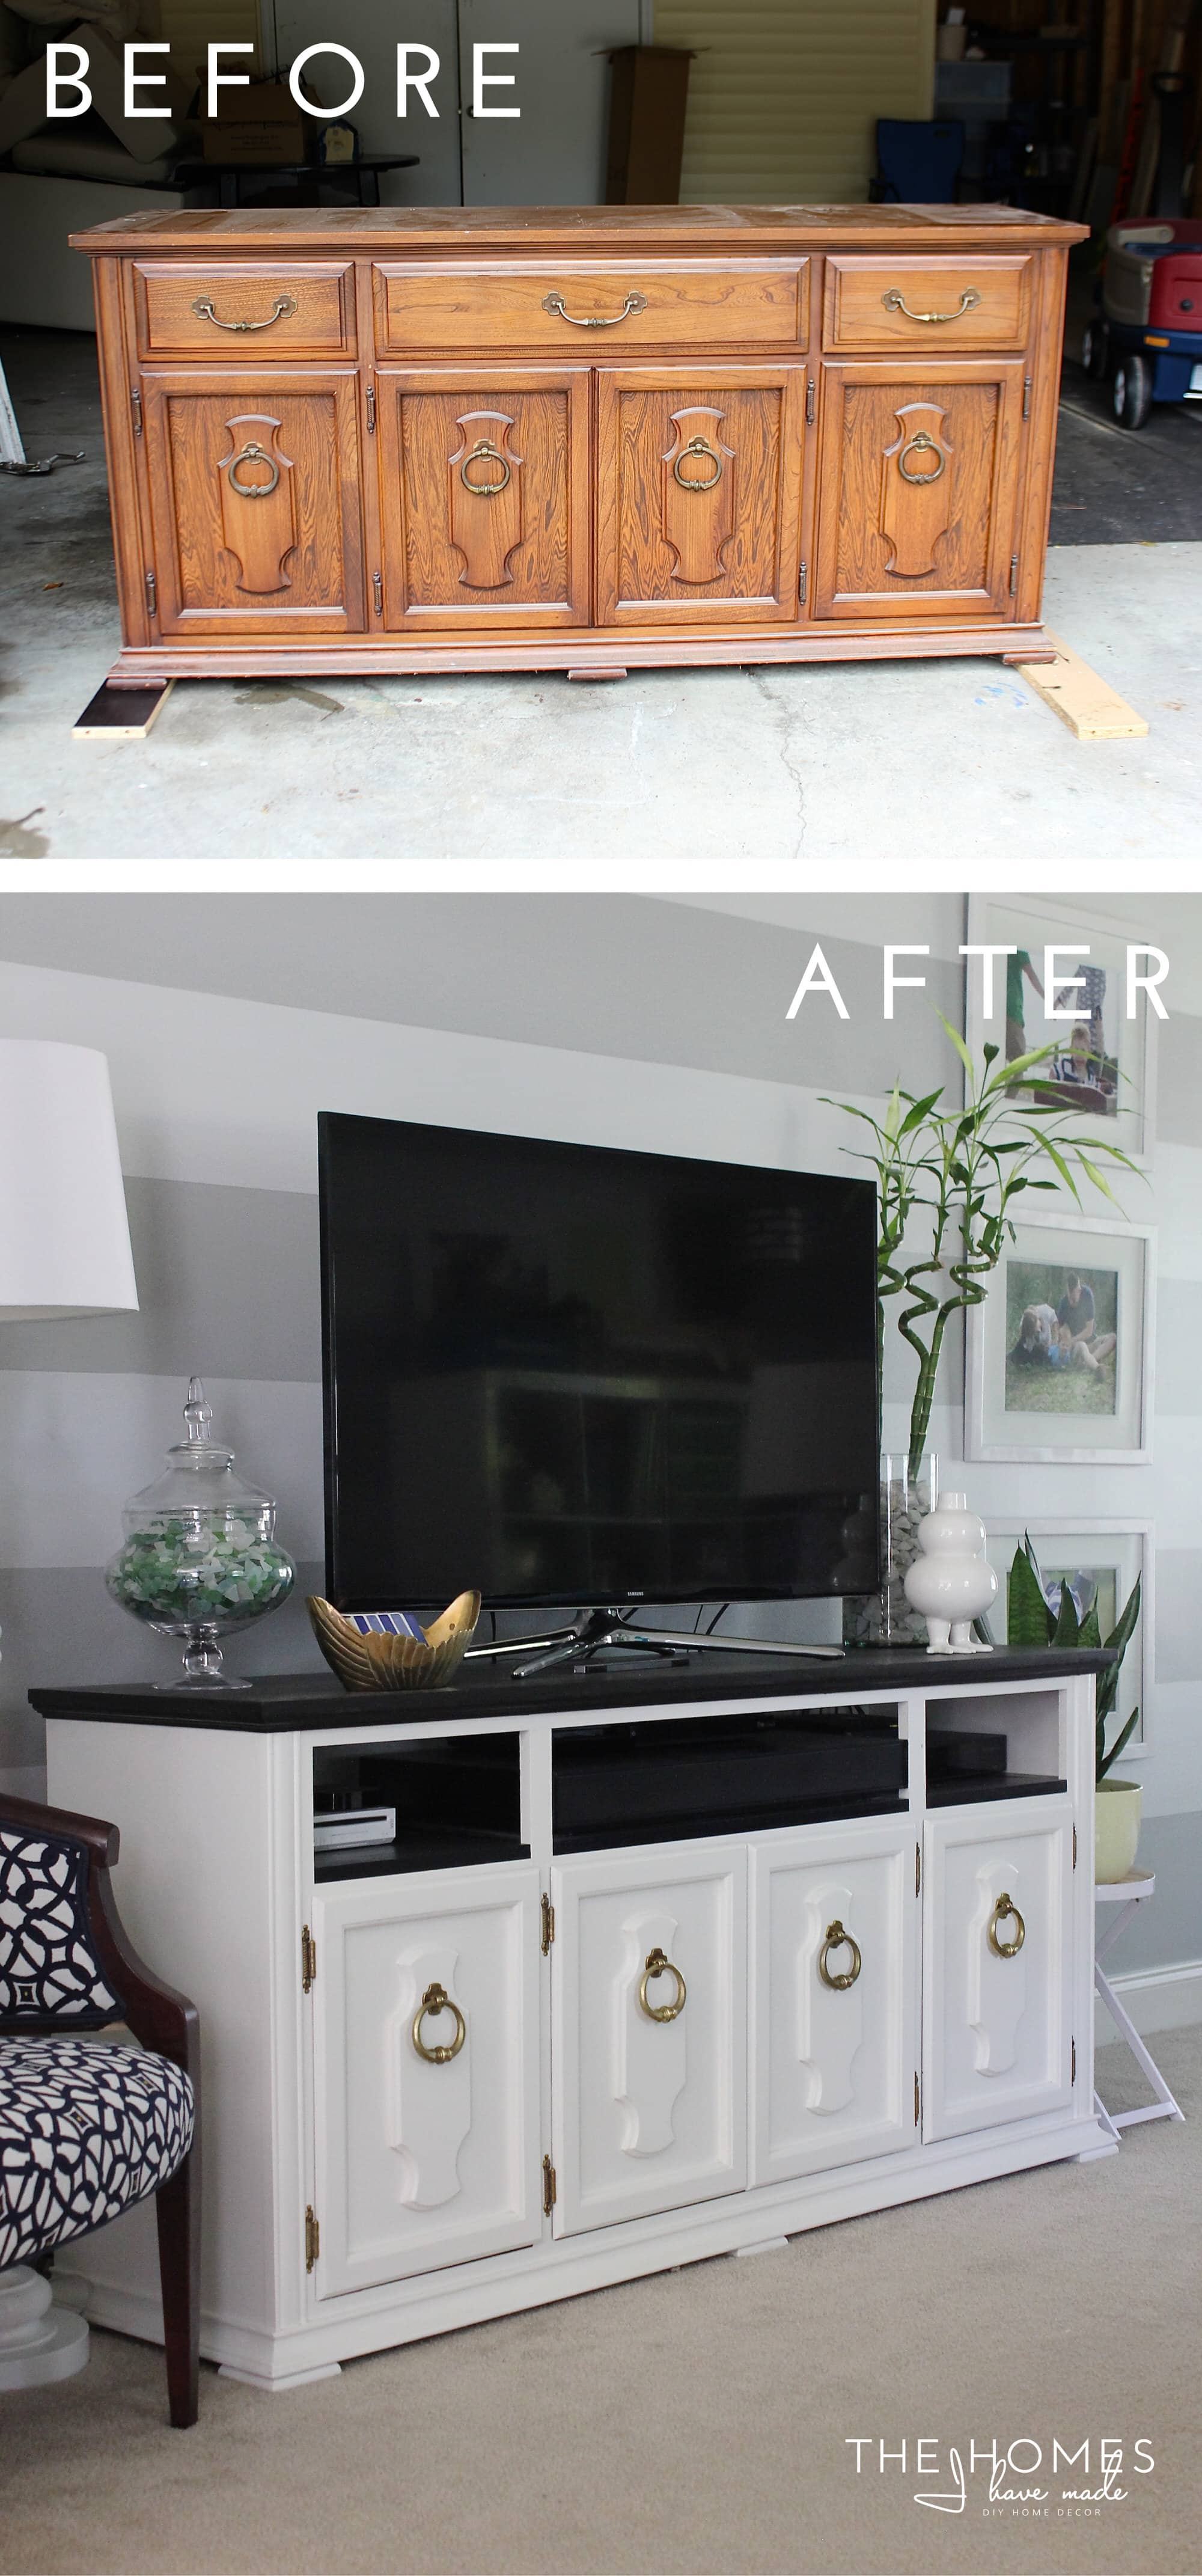 Diy Blog Möbel How To Transform A Dresser To A Media Stand Tutorial The Homes